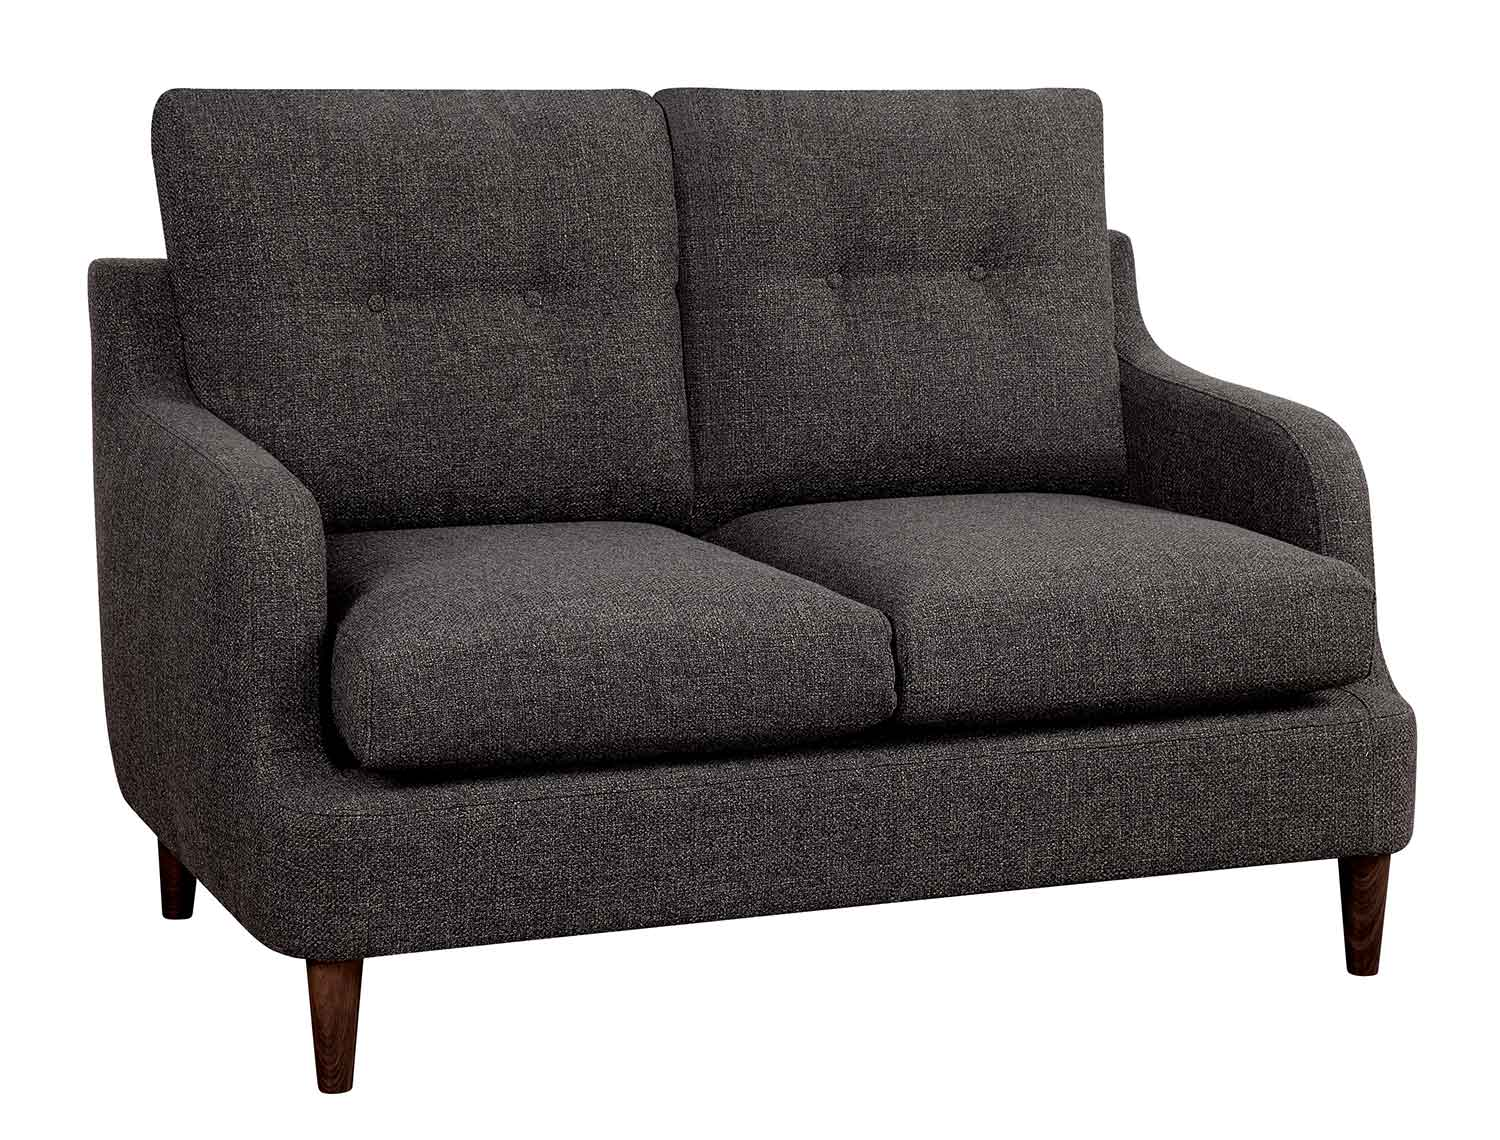 Homelegance Cagle Love Seat - Chocolate